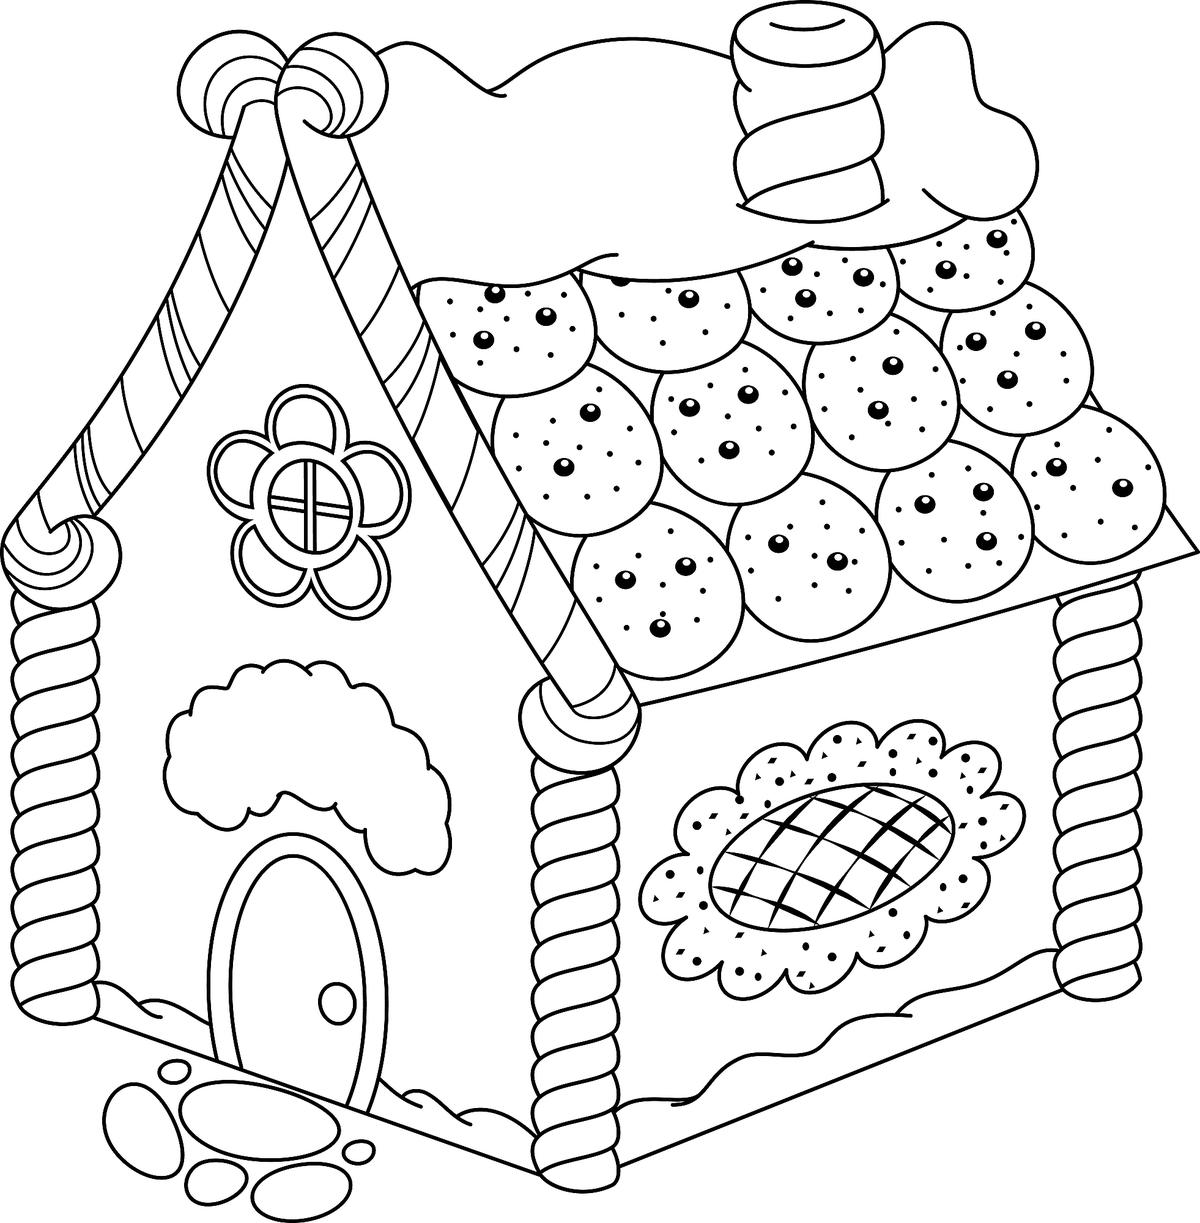 gingerbread house coloring sheet printable gingerbread house coloring pages for kids sheet coloring gingerbread house